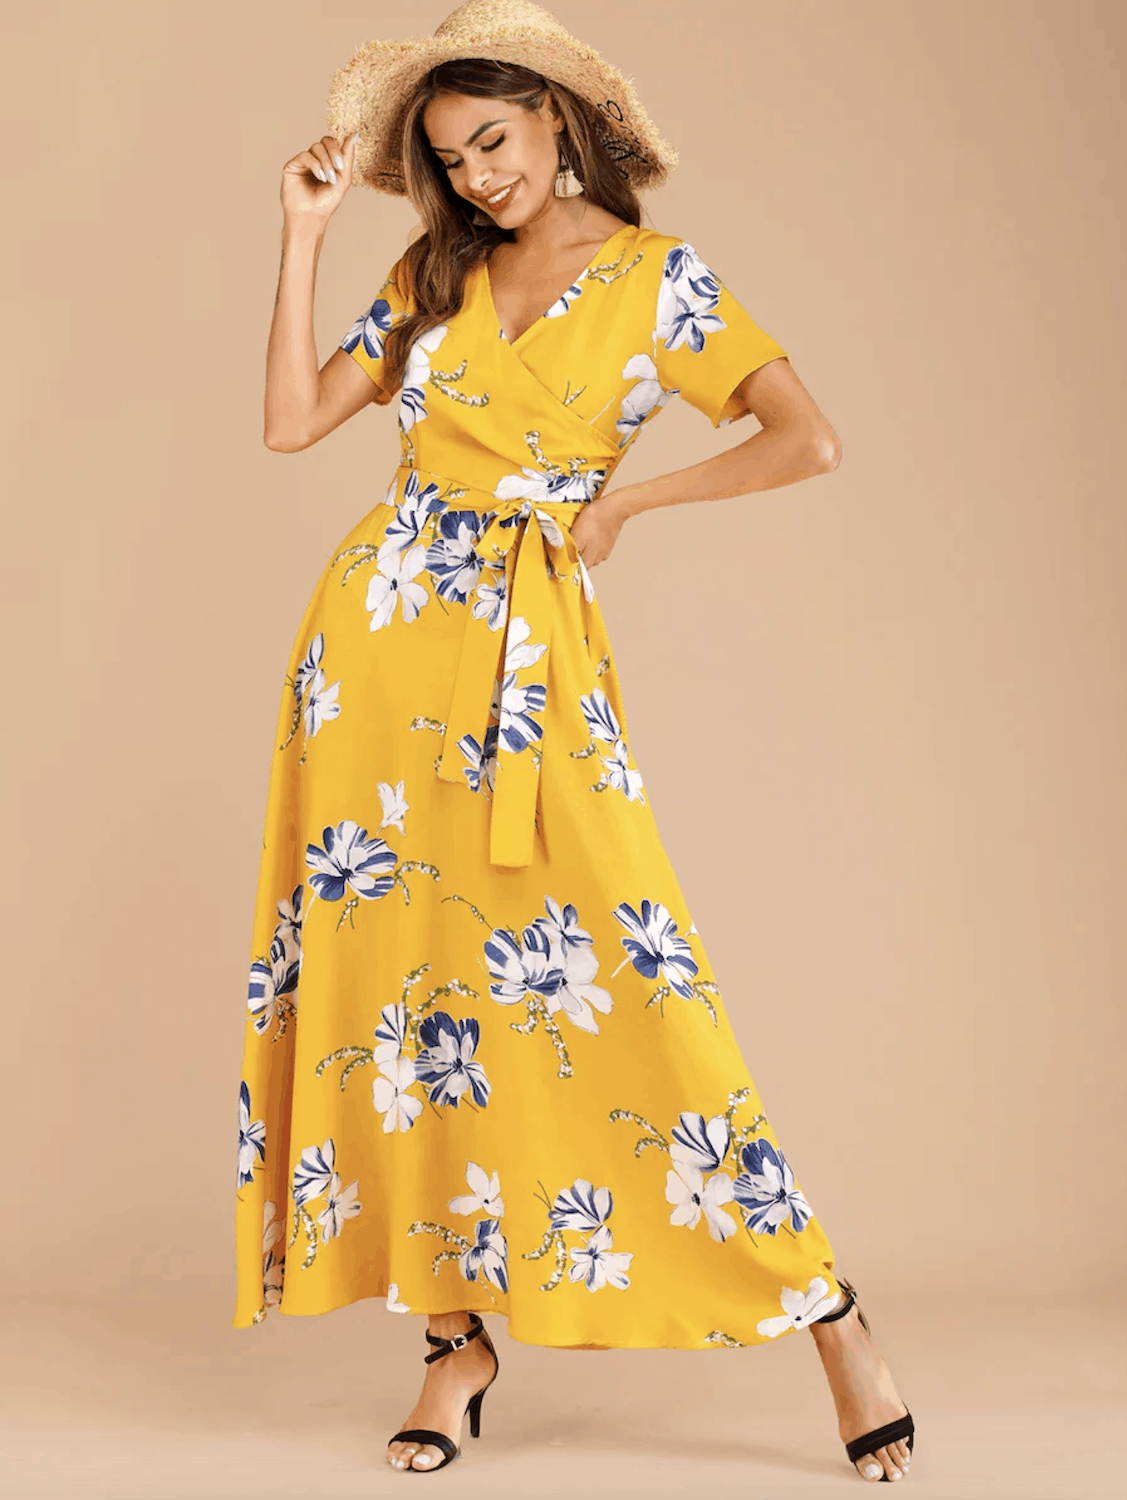 Summer Honeymoon Outfits for Her Yellow Floral Print Belted Dress